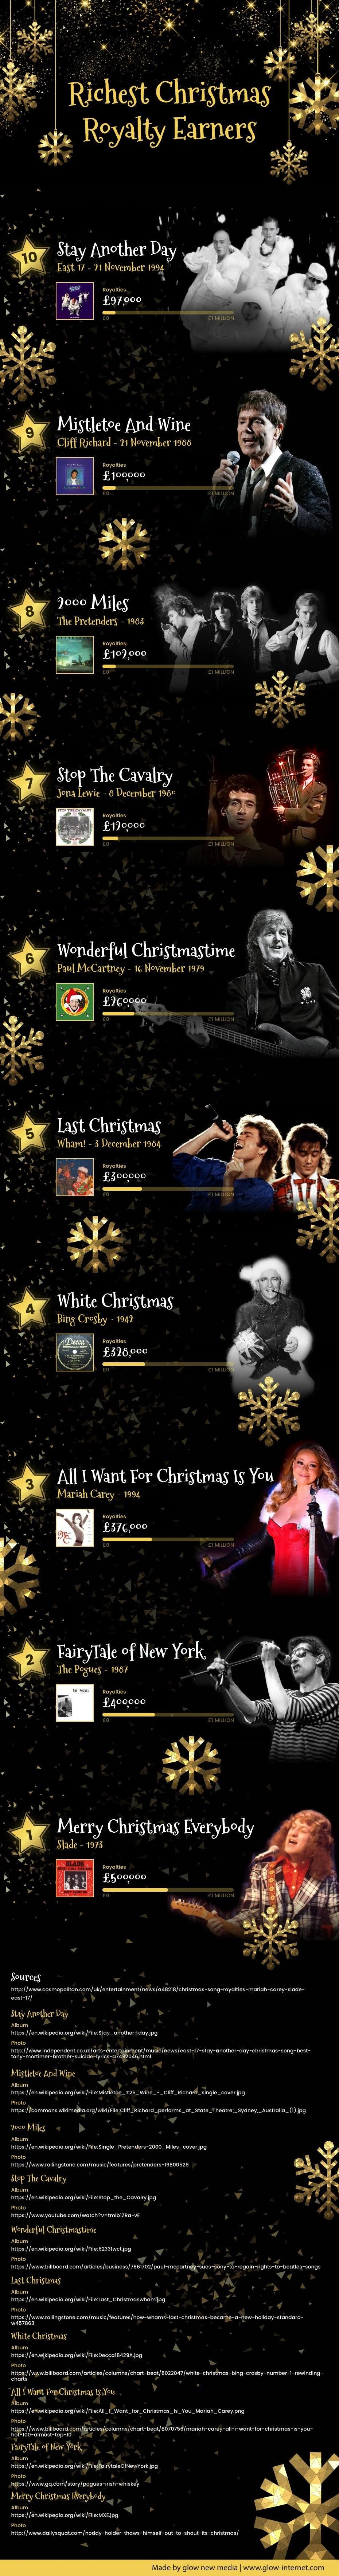 Richest Christmas Royalty Earners Infographic Christmas Infographic Best Christmas Songs Christmas Song